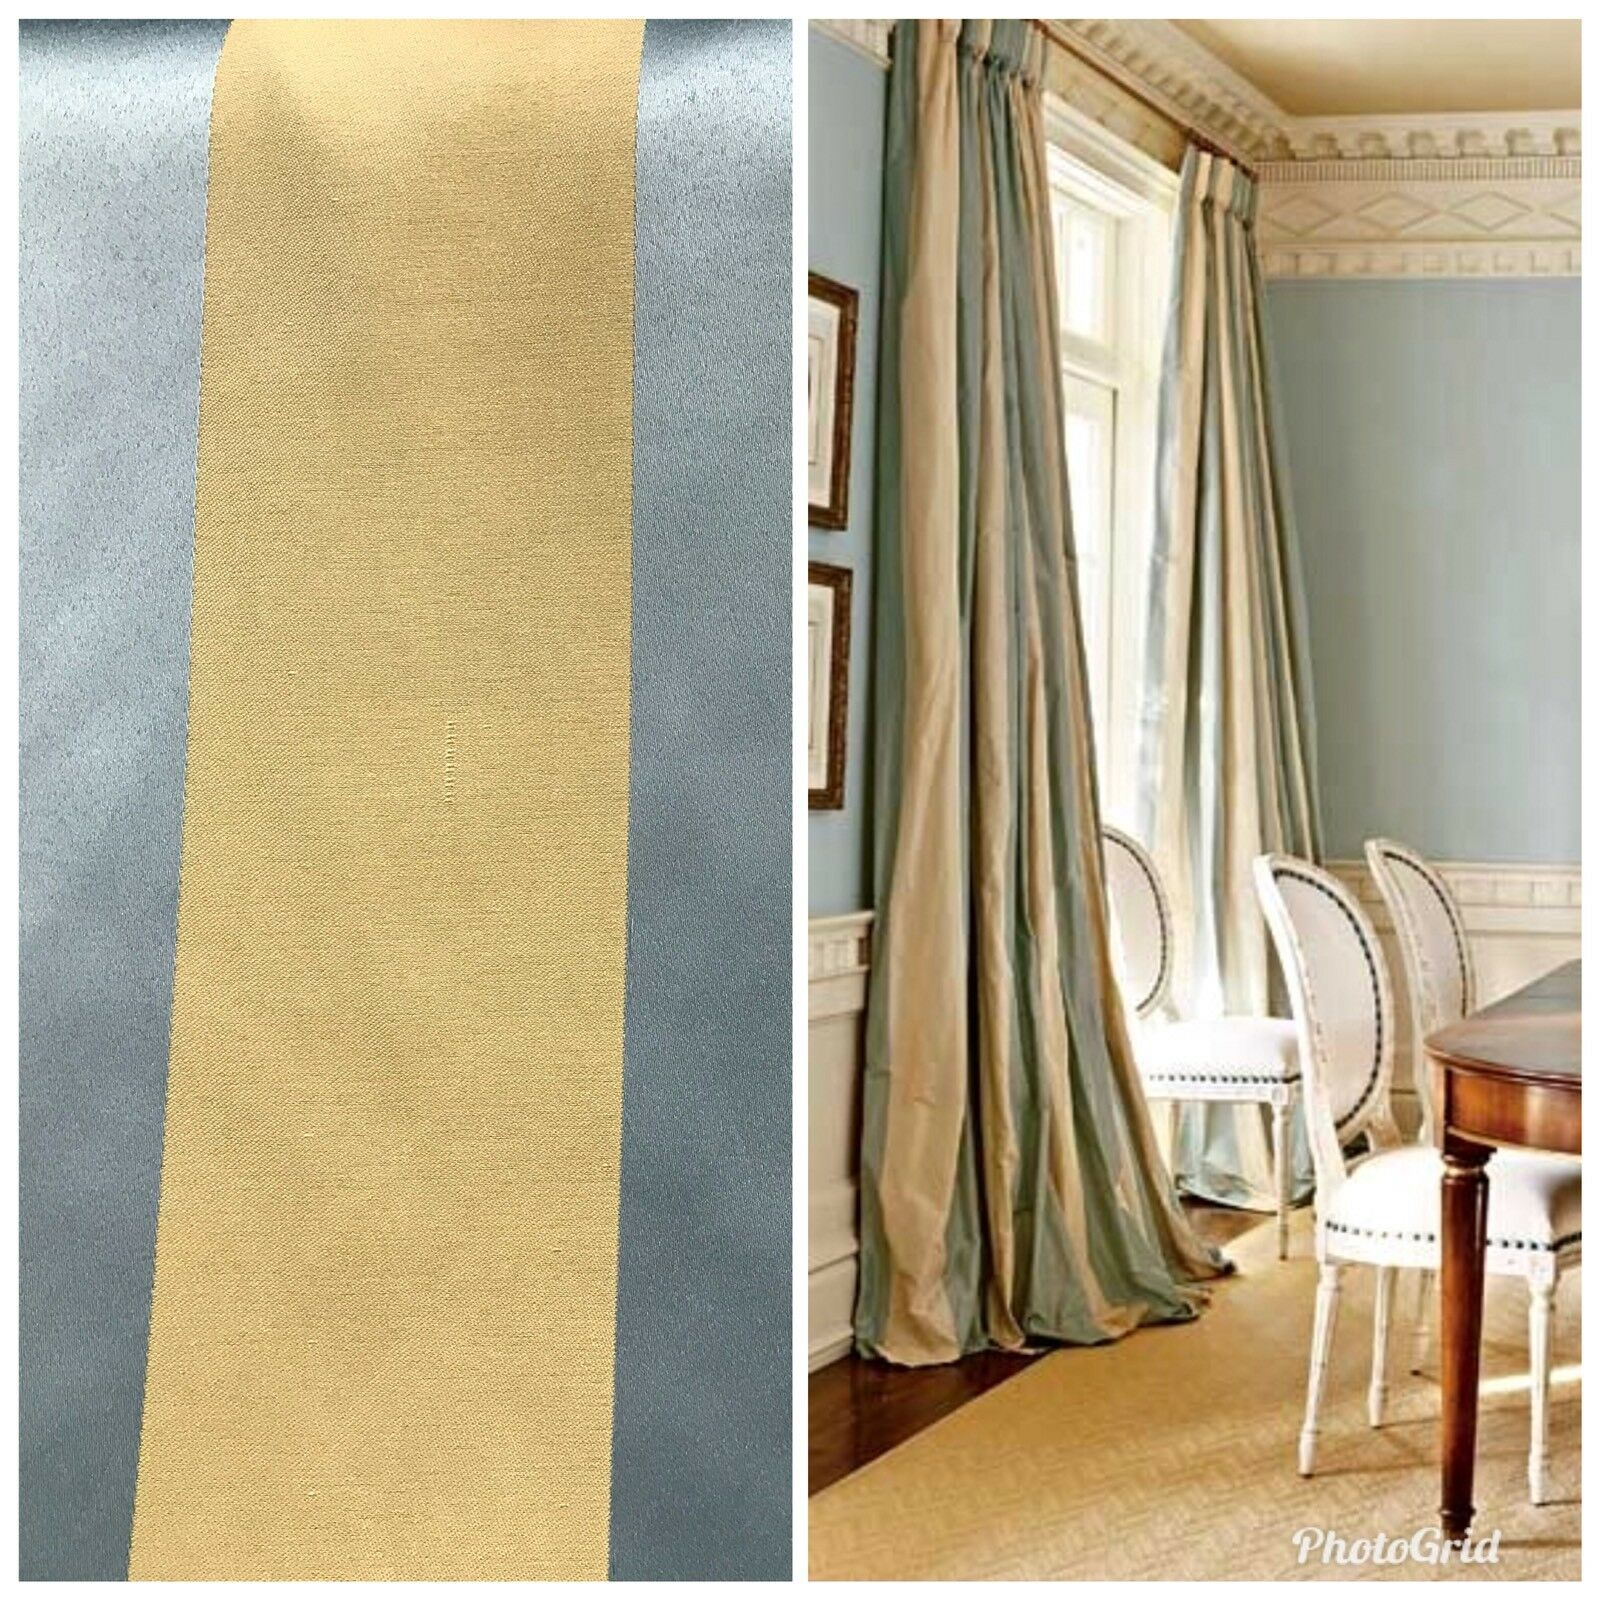 Stripe Satin Interior Design Fabric Antique Blue And Gold